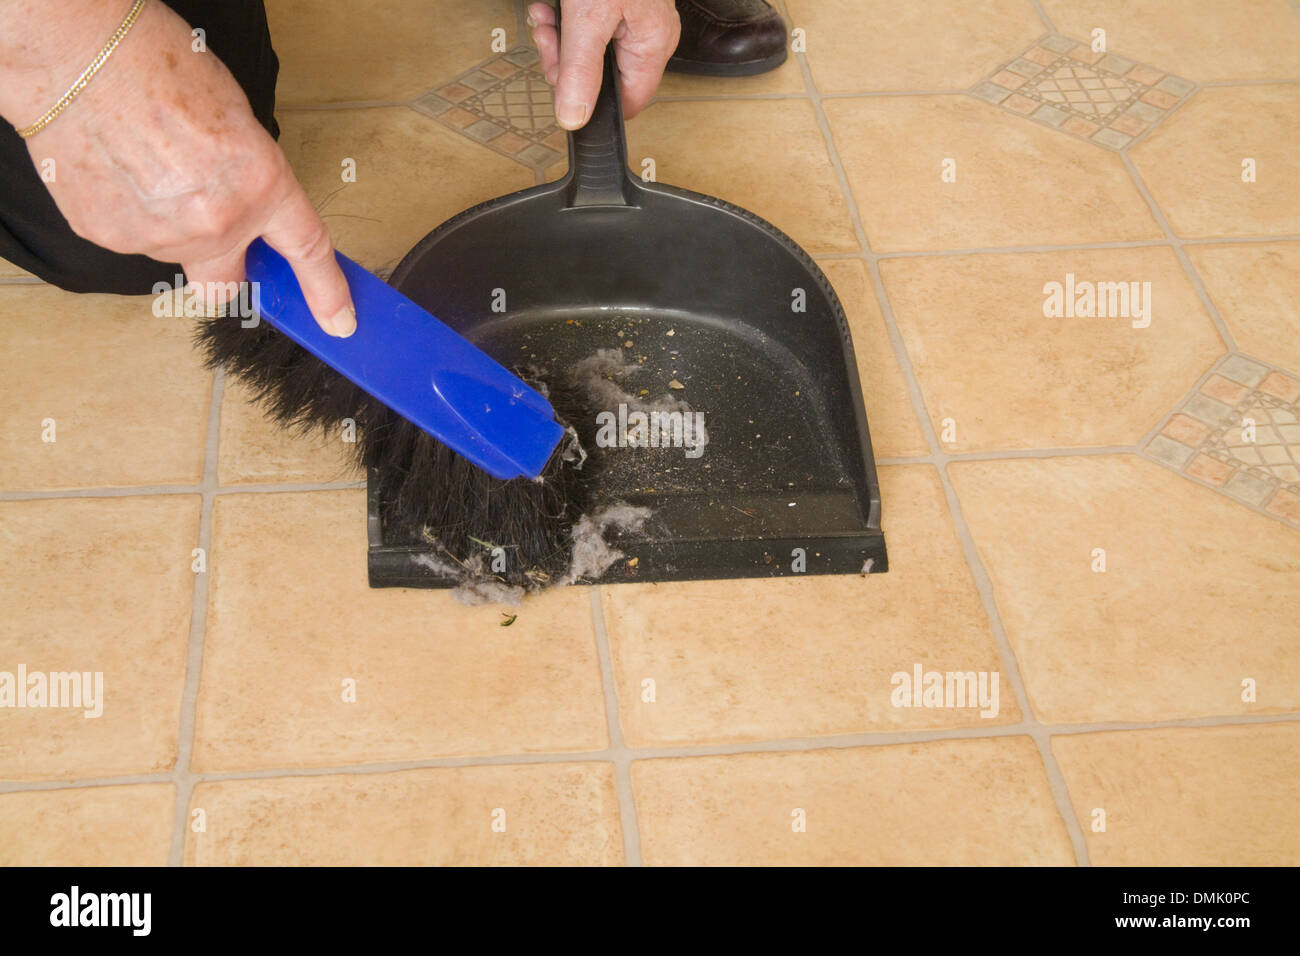 Close up woman kneeling sweeping fluff and dirt off a kitchen floor with hand brush into dustpan - Stock Image